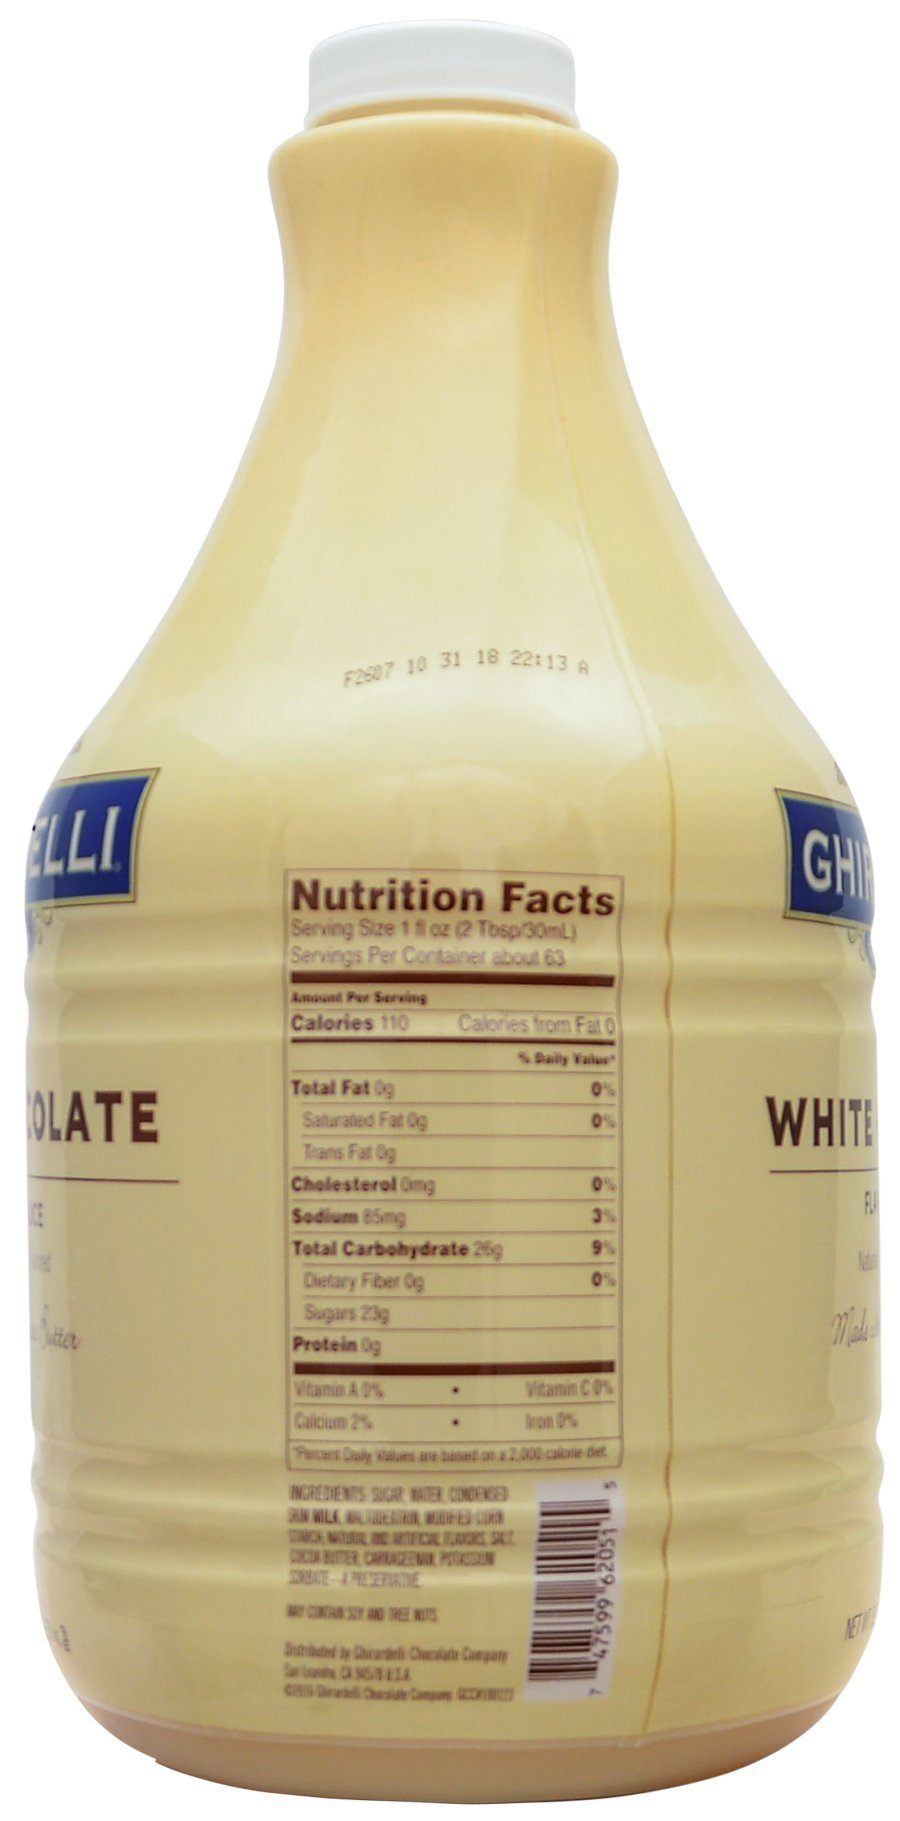 Ghirardelli - White Flavored Sauce, 89.4 Ounce Bottle - with Limited Edition Measuring Spoon by Ghirardelli (Image #2)